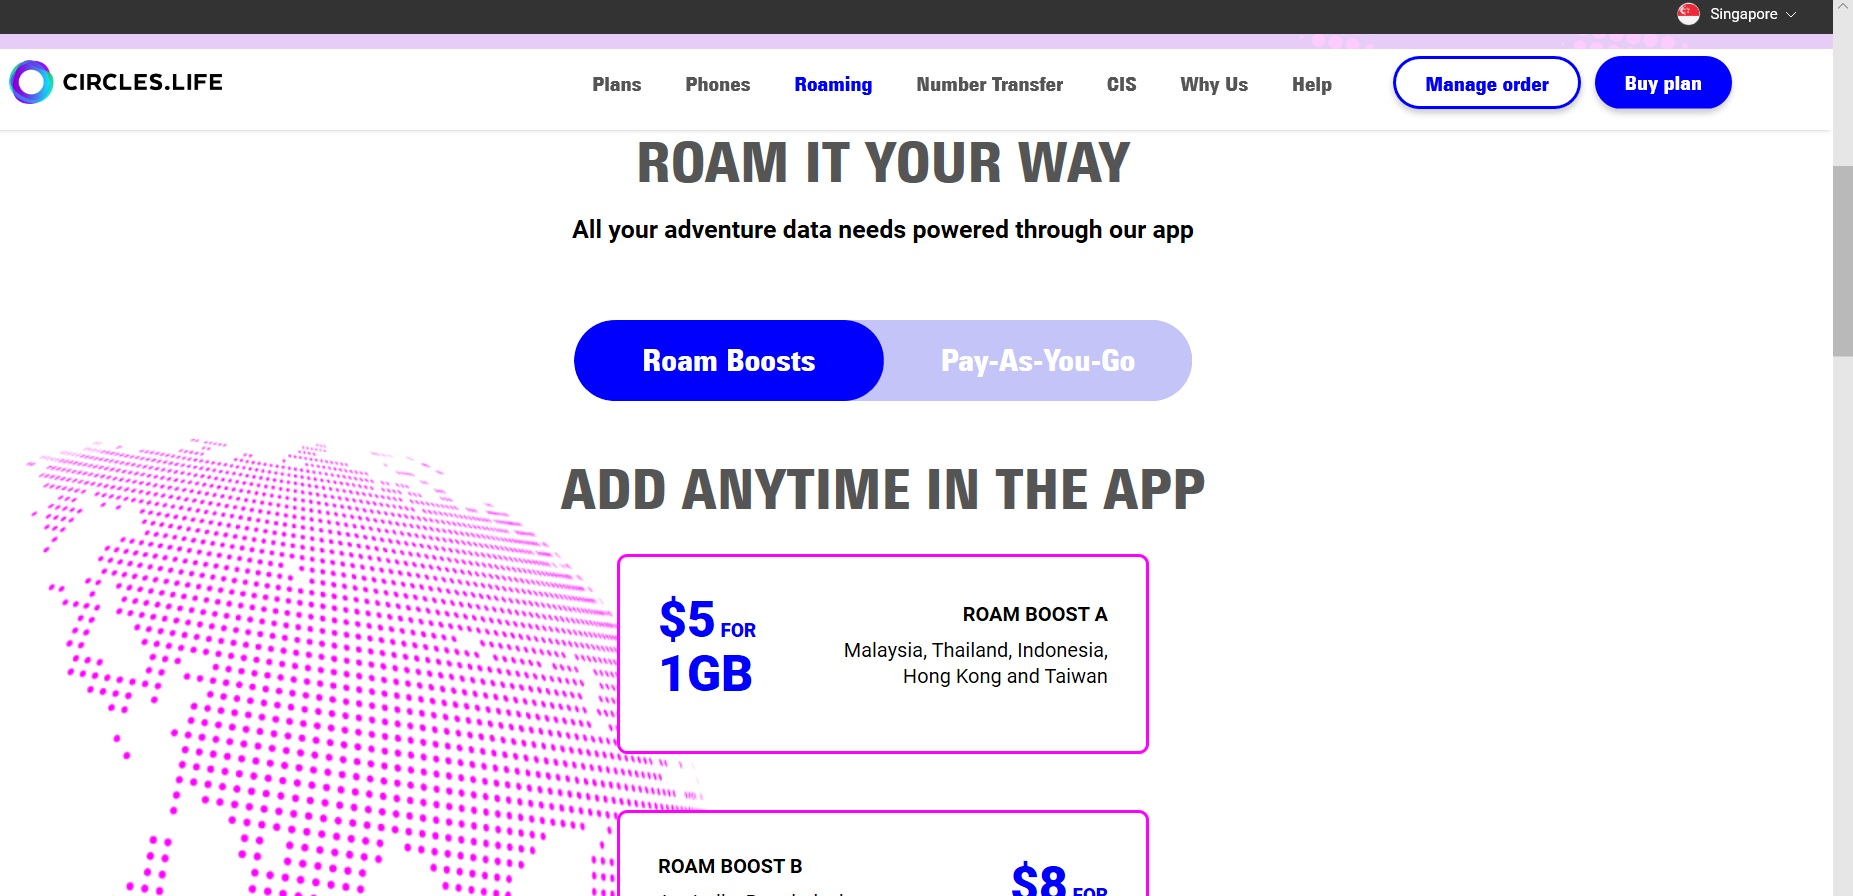 Option to buy data roaming from Circles.Life.